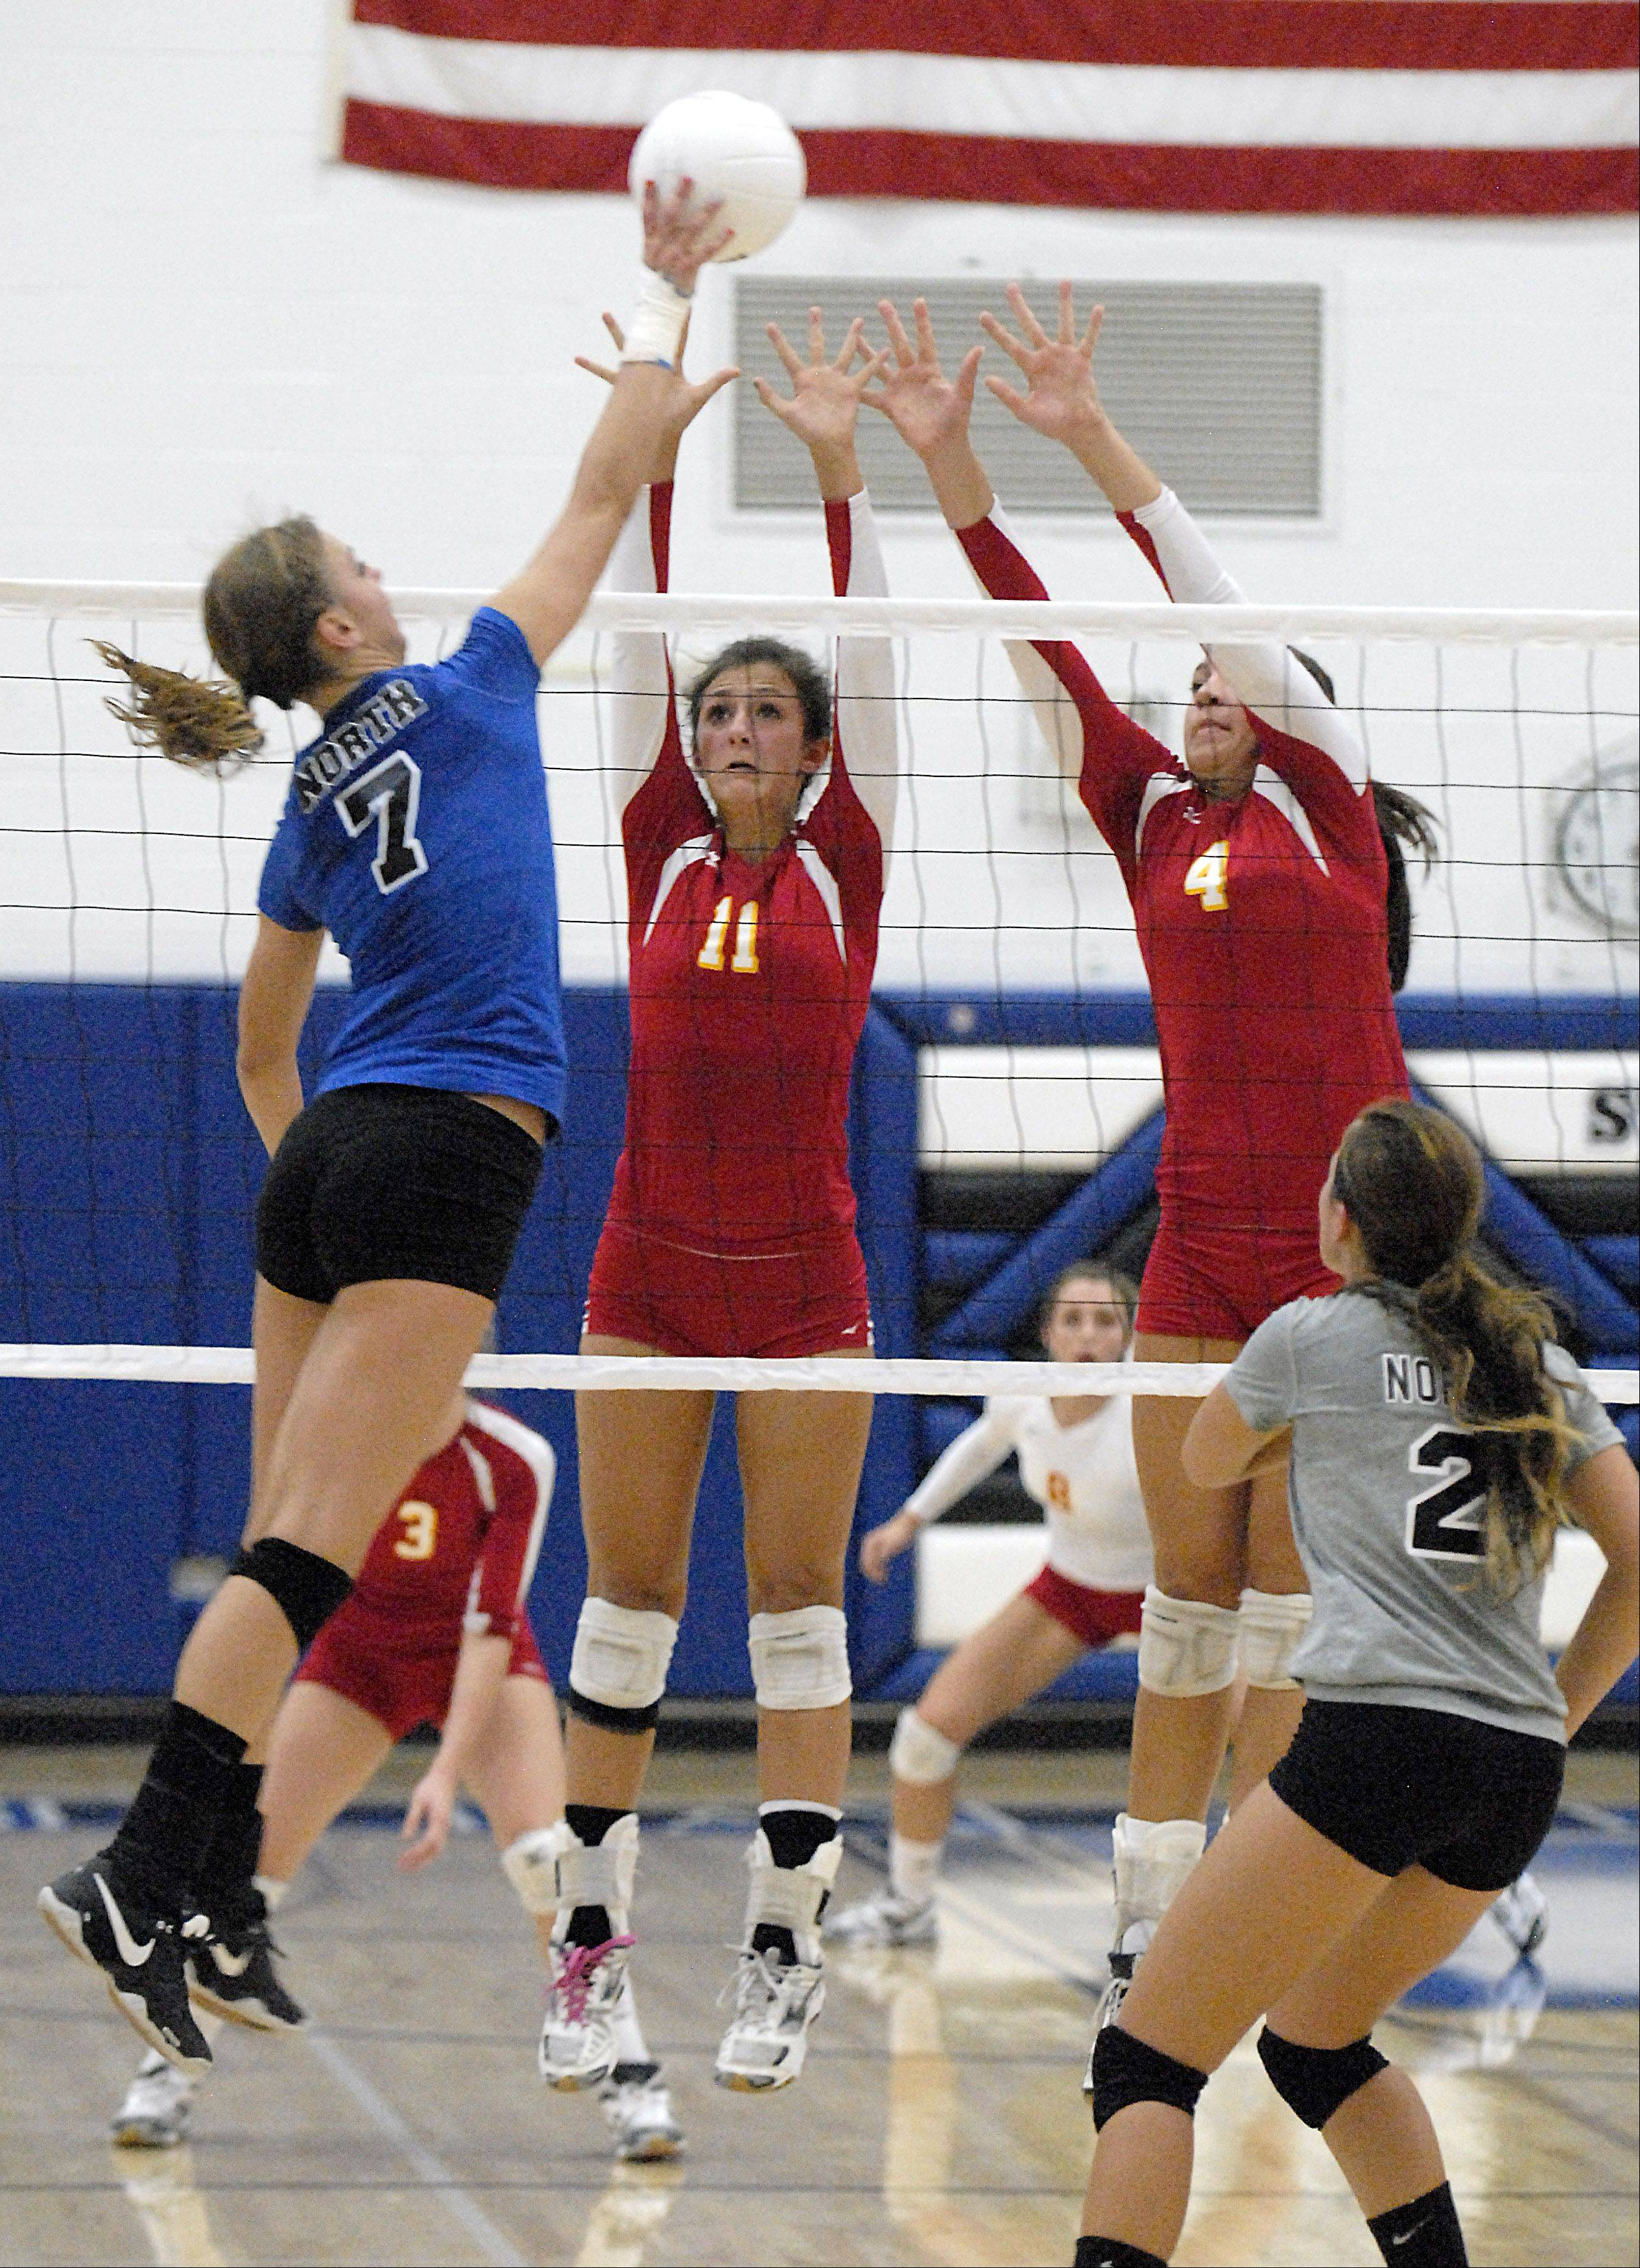 Batavia's Anysa Ocon and Kristen Koncelik attempt a block on St. Charles North's Taylor Krage in game one on Tuesday, September 4.